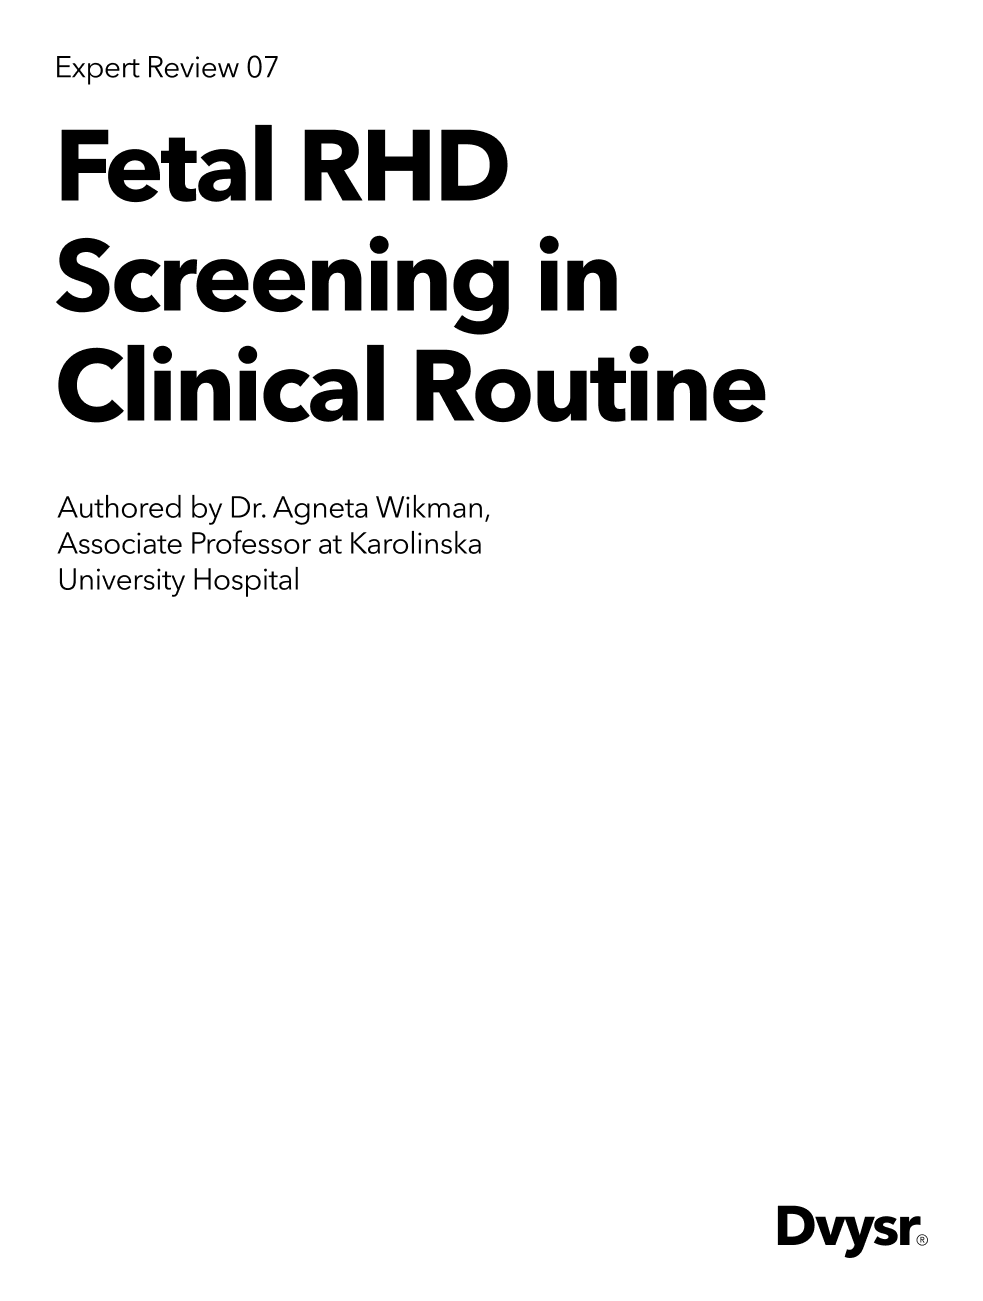 Non-invasive (NIPT) fetal RHD screening in clinical routine